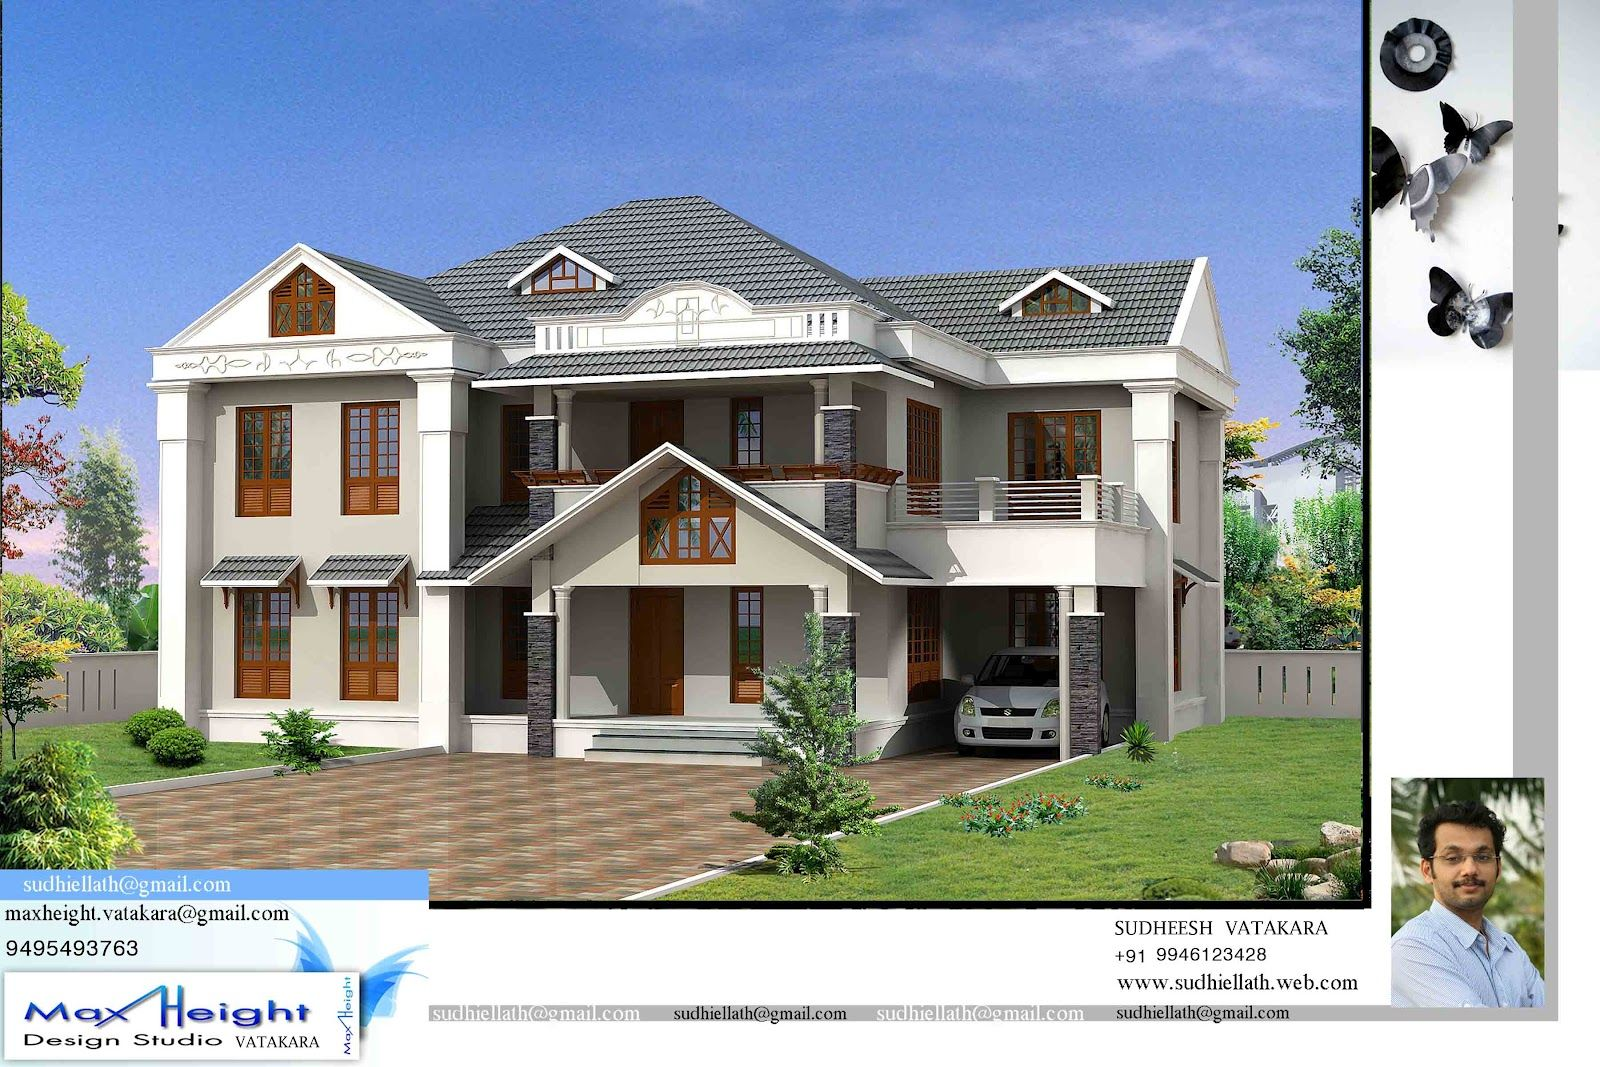 Architecture Design Kerala Model house designs kerala model | house design ideas | pinterest